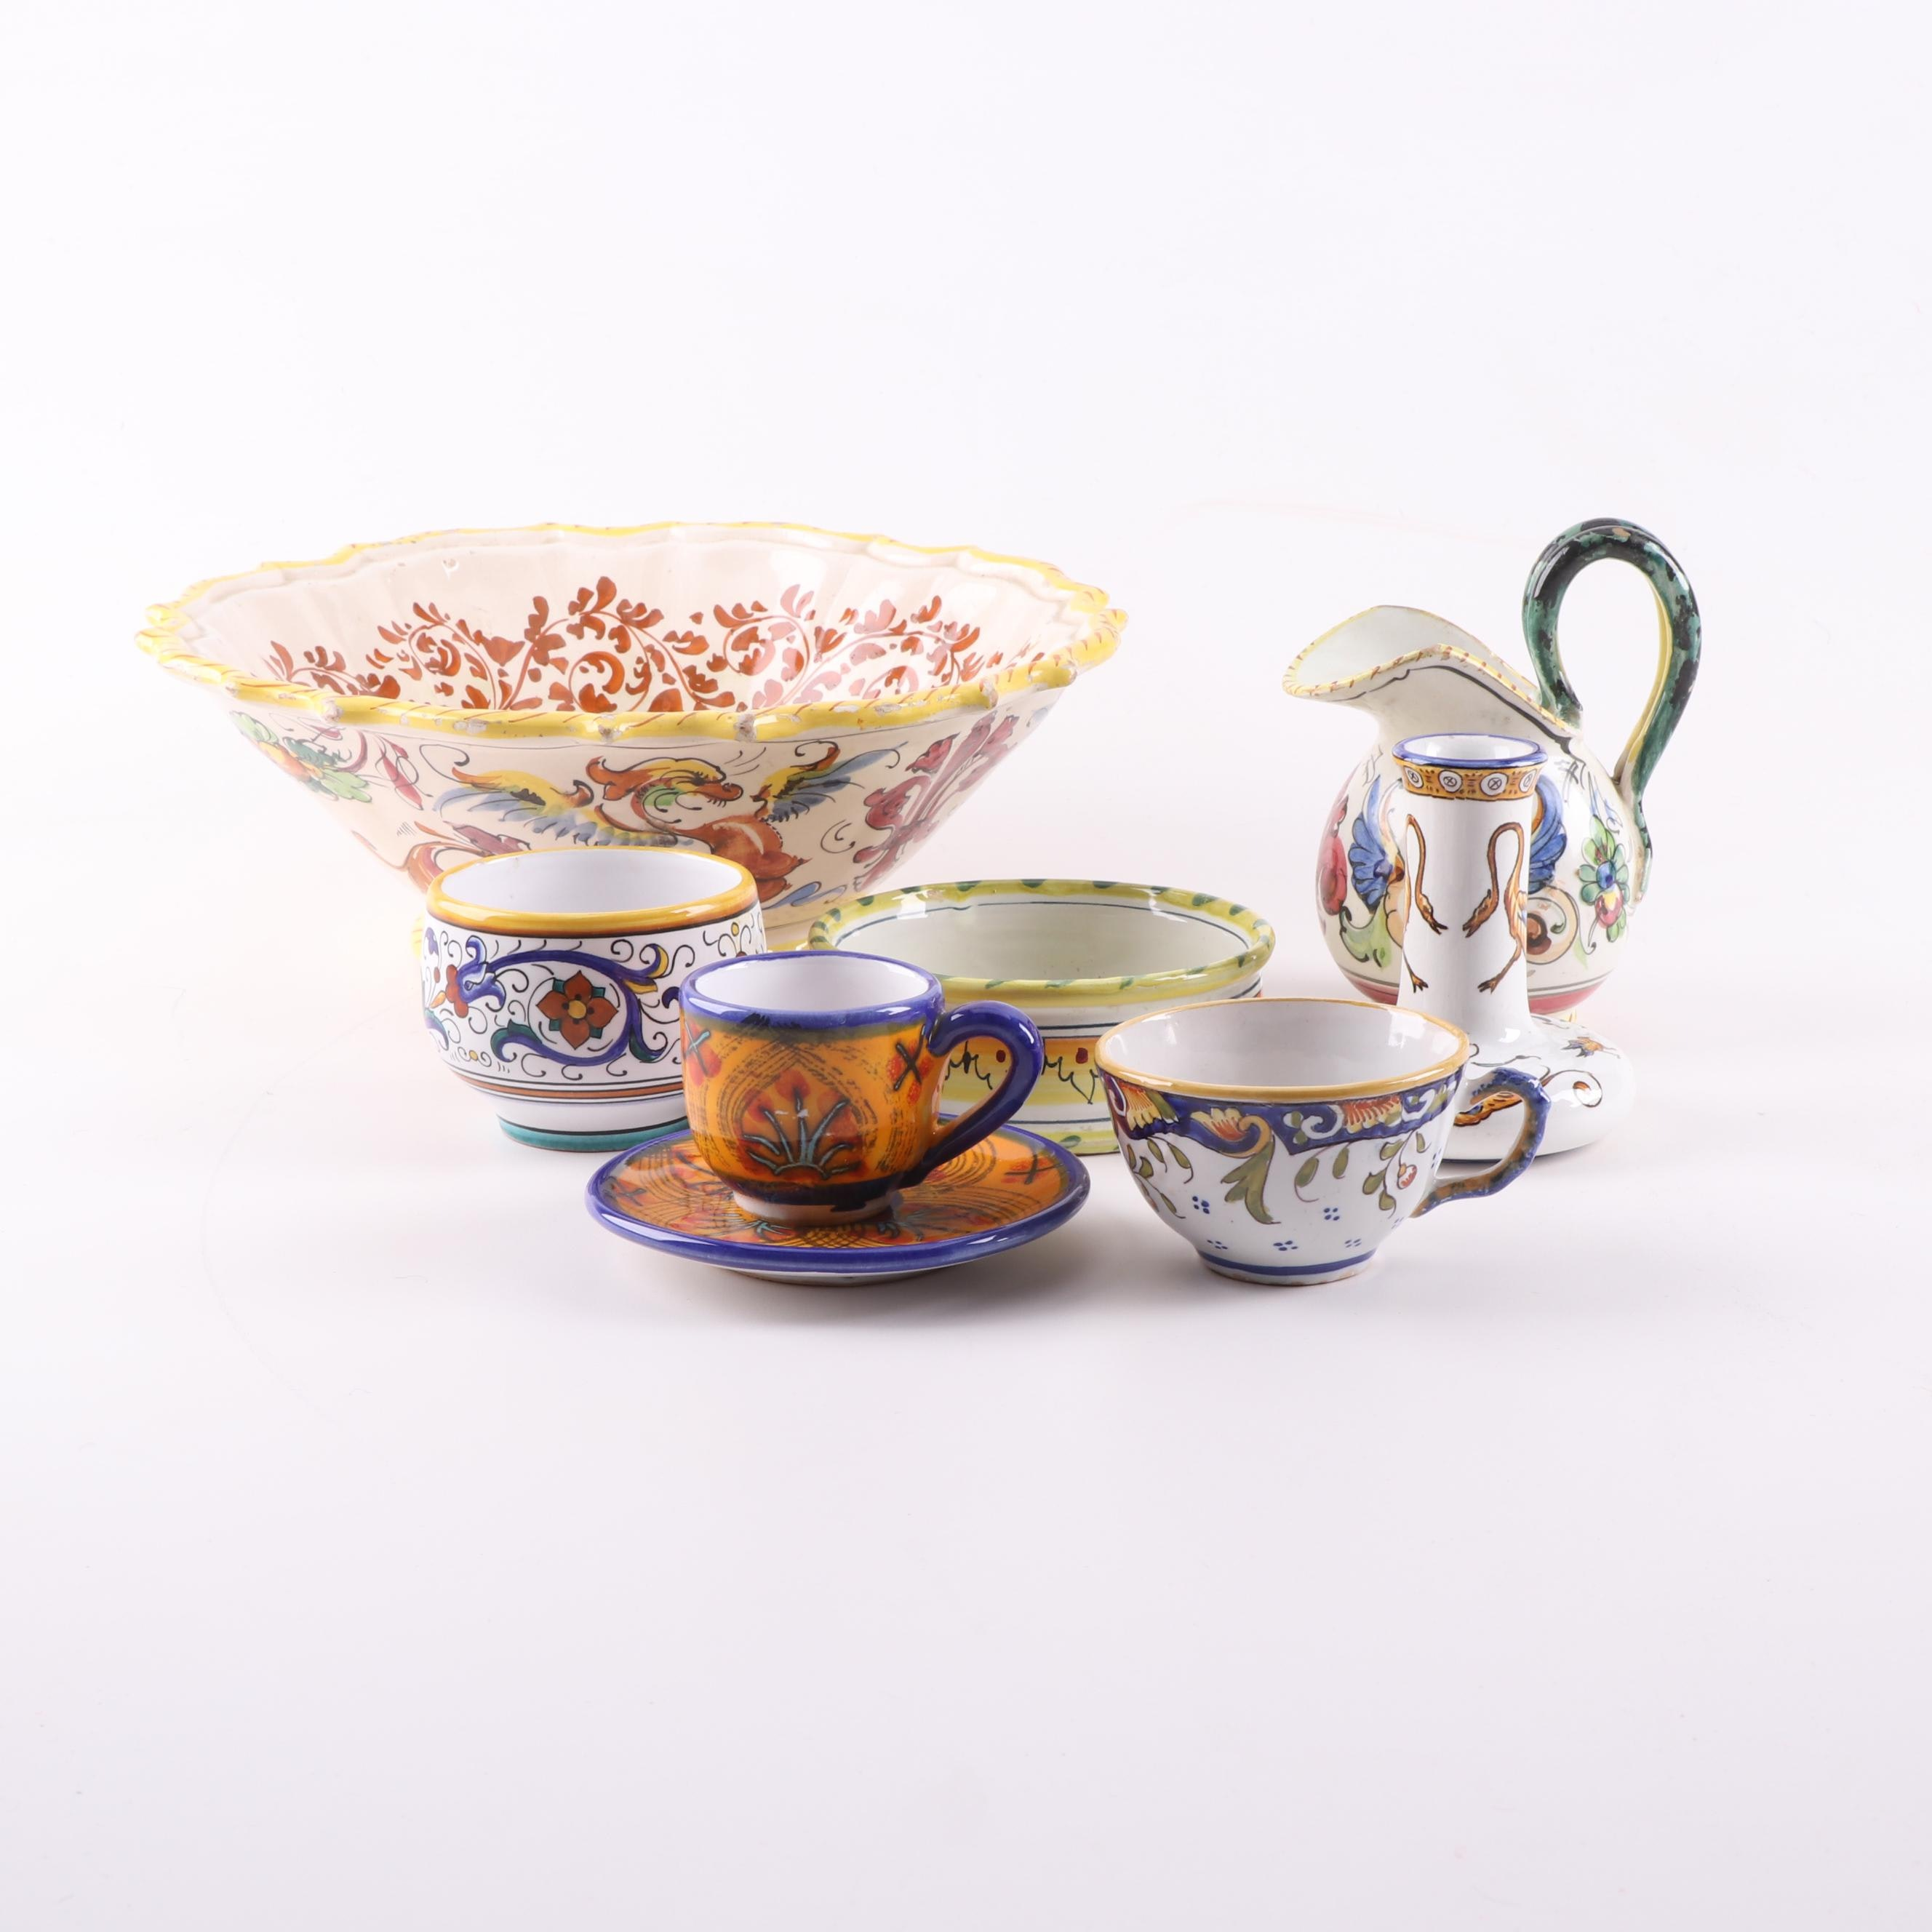 Italian Majolica and French Faïence Serveware Including Deruta and Gien